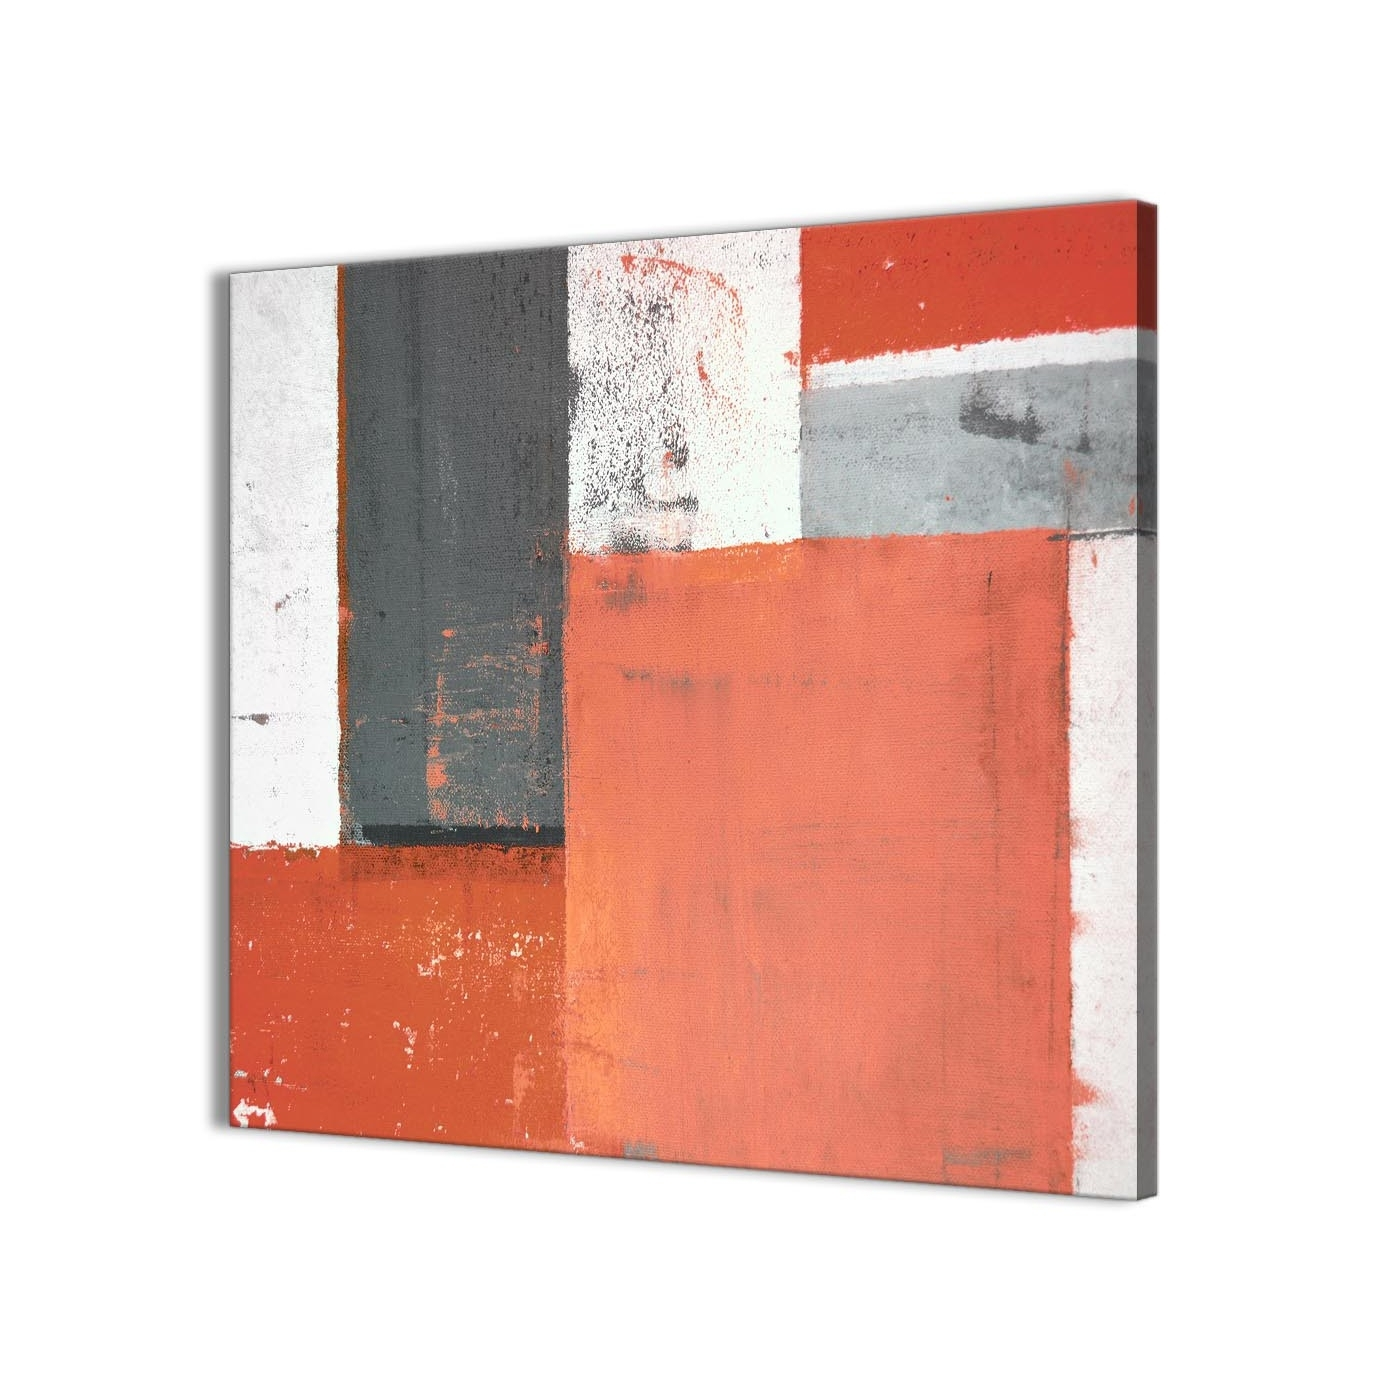 Coral Grey Abstract Painting Canvas Wall Art Pictures – Modern 49Cm For Best And Newest Modern Canvas Wall Art (View 4 of 15)